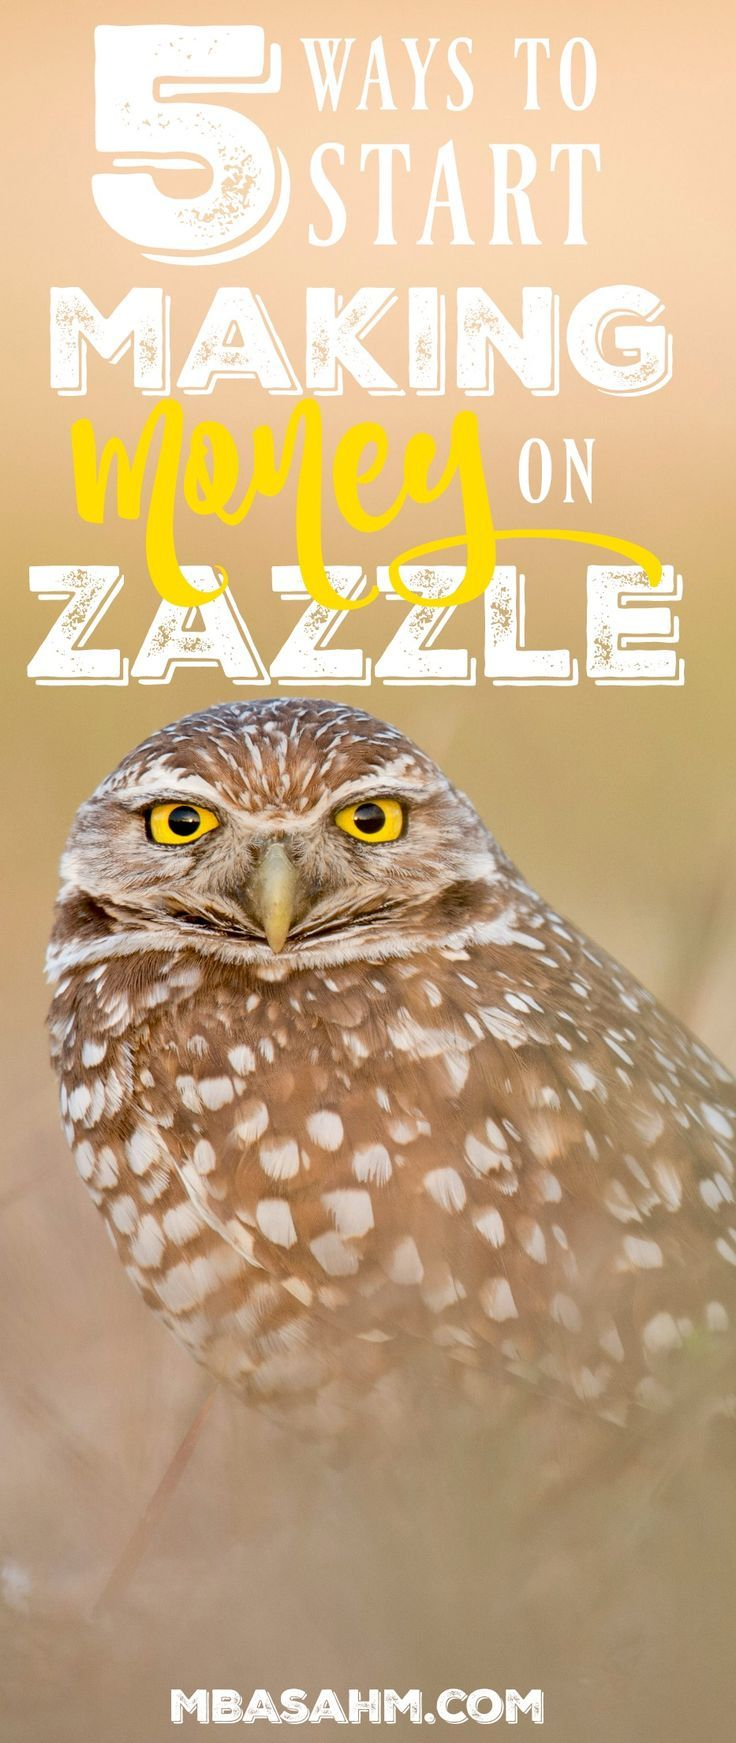 If you want to figure out how to make money on zazzle, start with these 5 big money-makers!